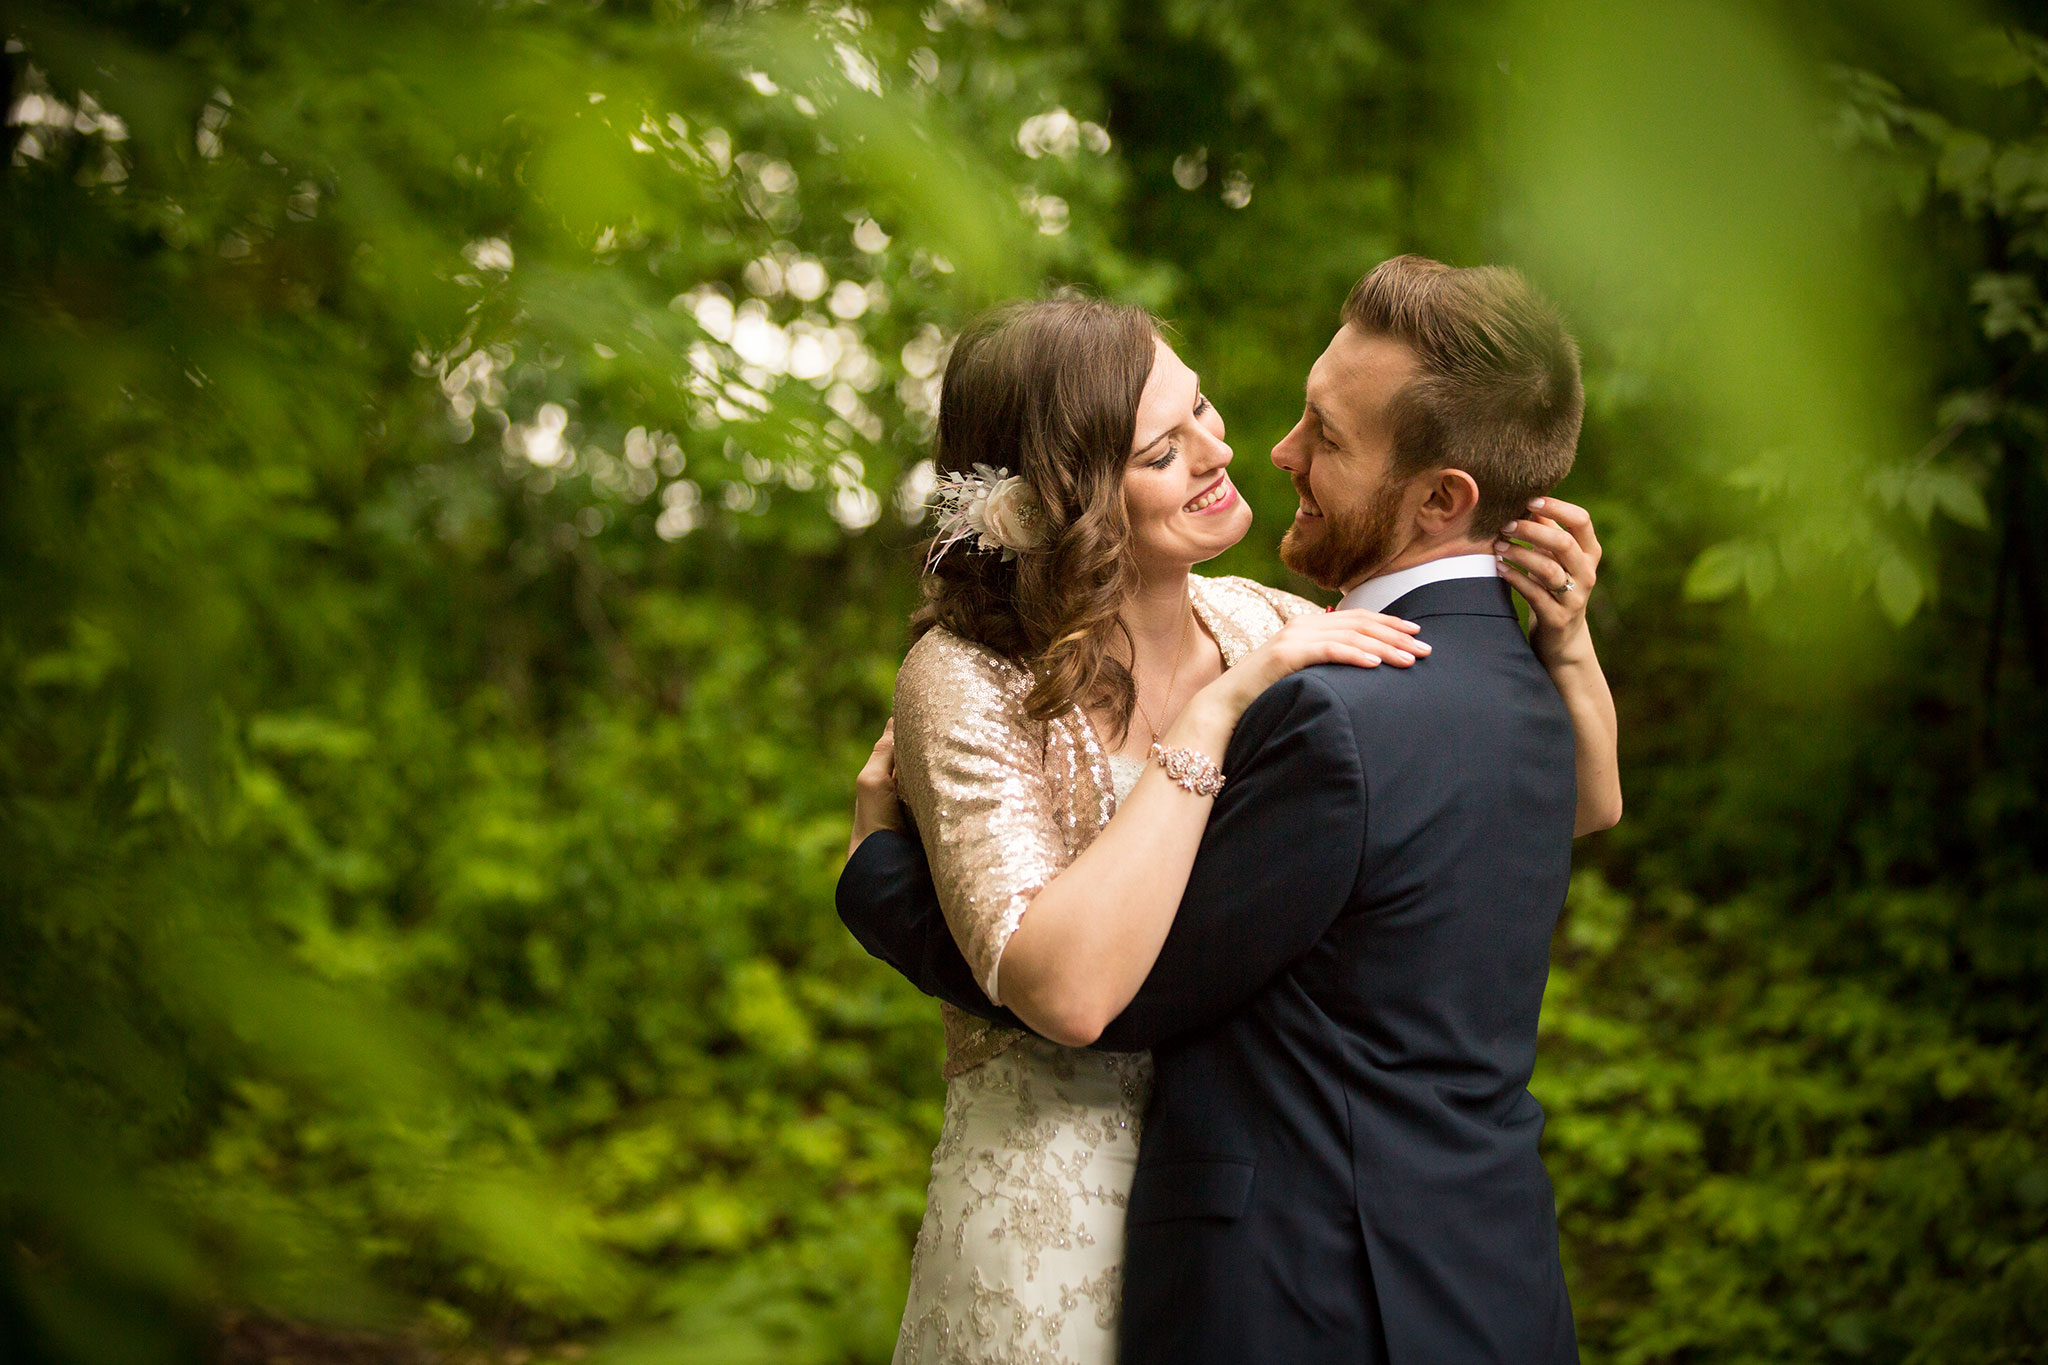 Wedding photography at the Kortright Centre